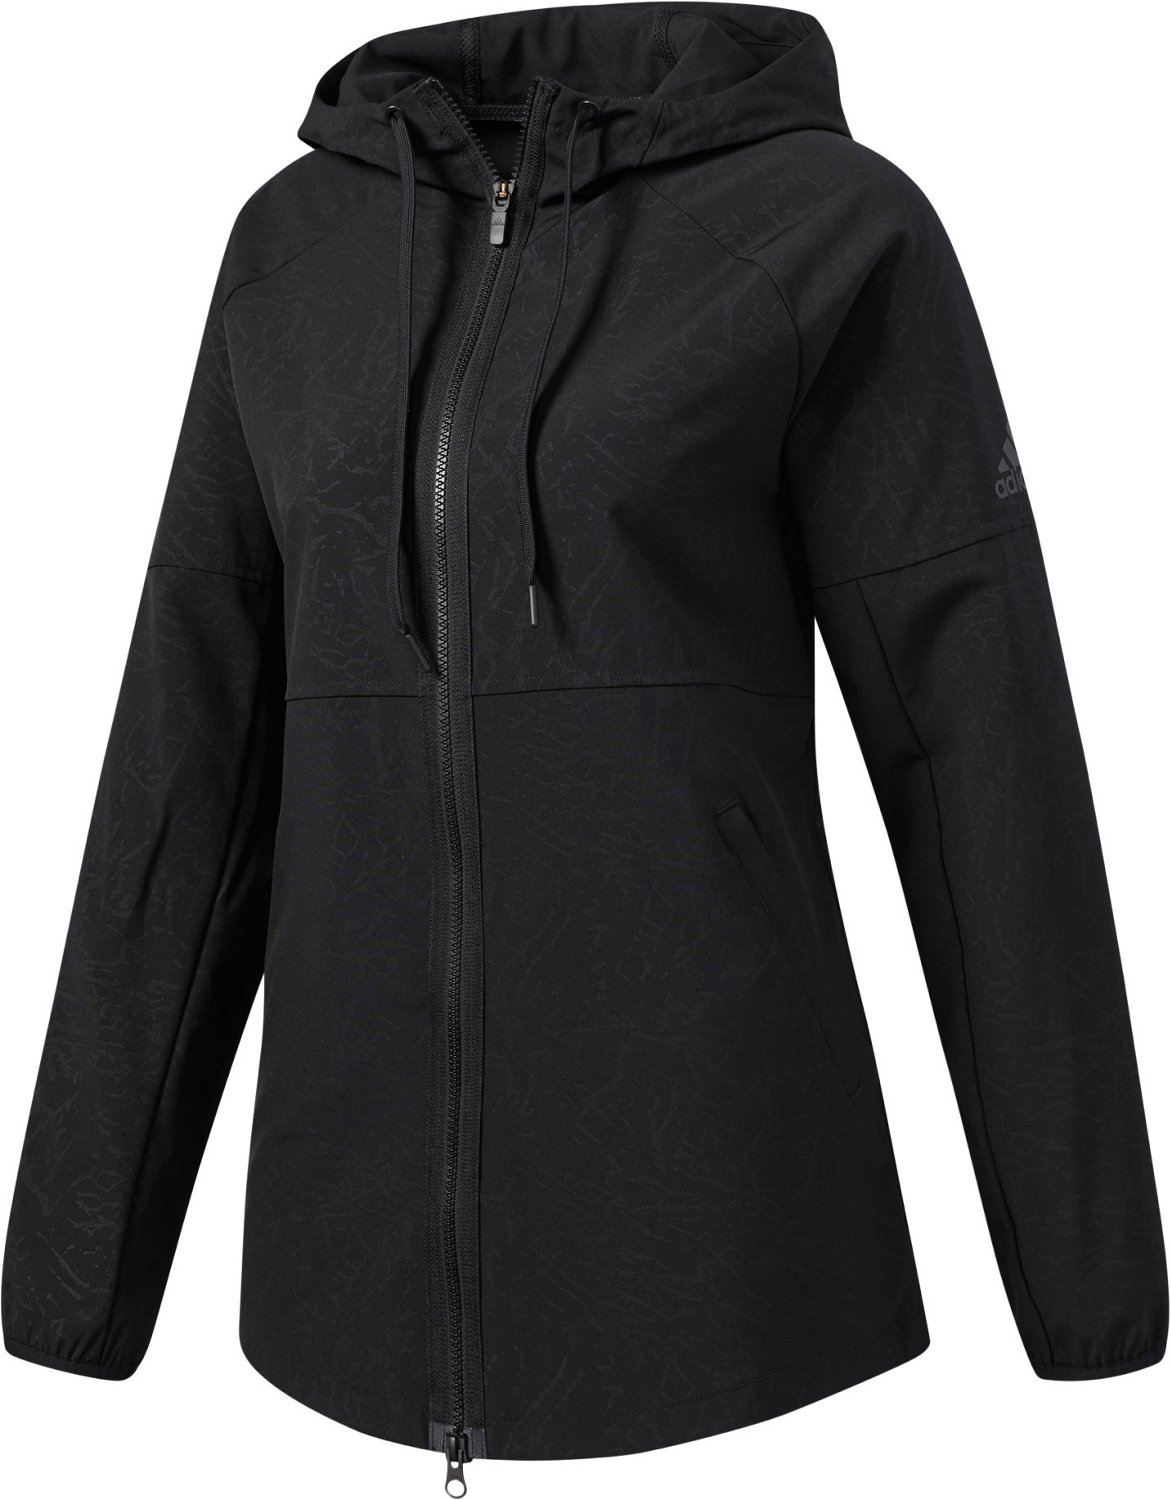 03b7c765b Display product reviews for adidas Women's Sport2Street Full Zip Windbreaker